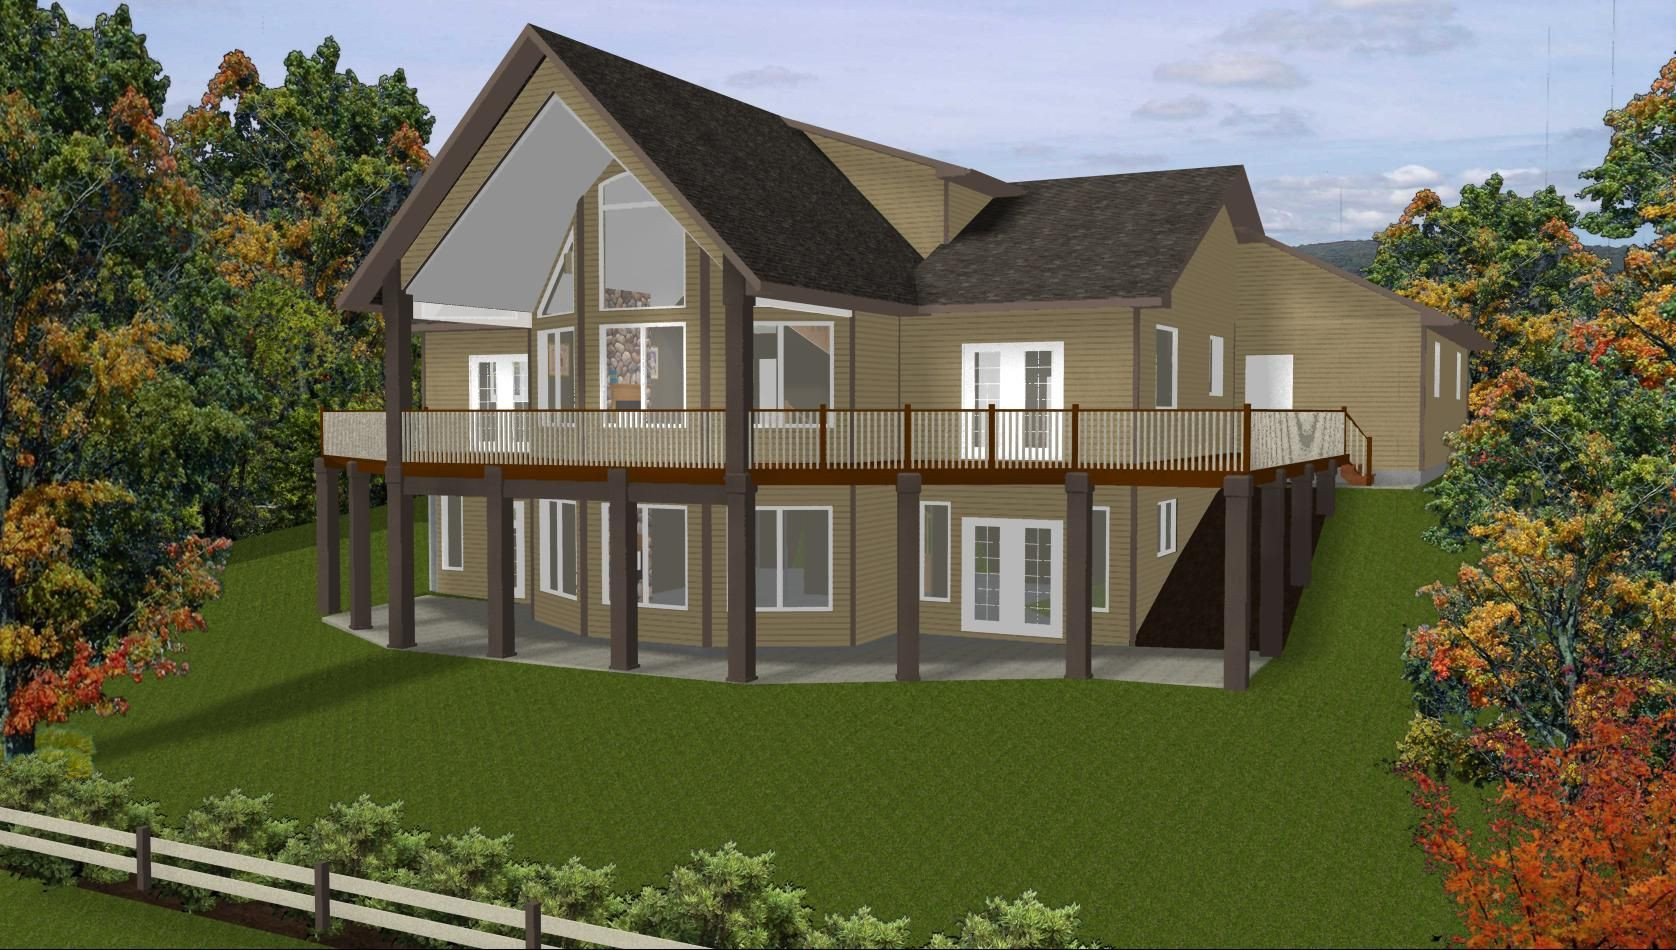 Best ideas about Daylight Basement Ideas . Save or Pin Image Detail for Daylight Basement House Plans Daylight Now.